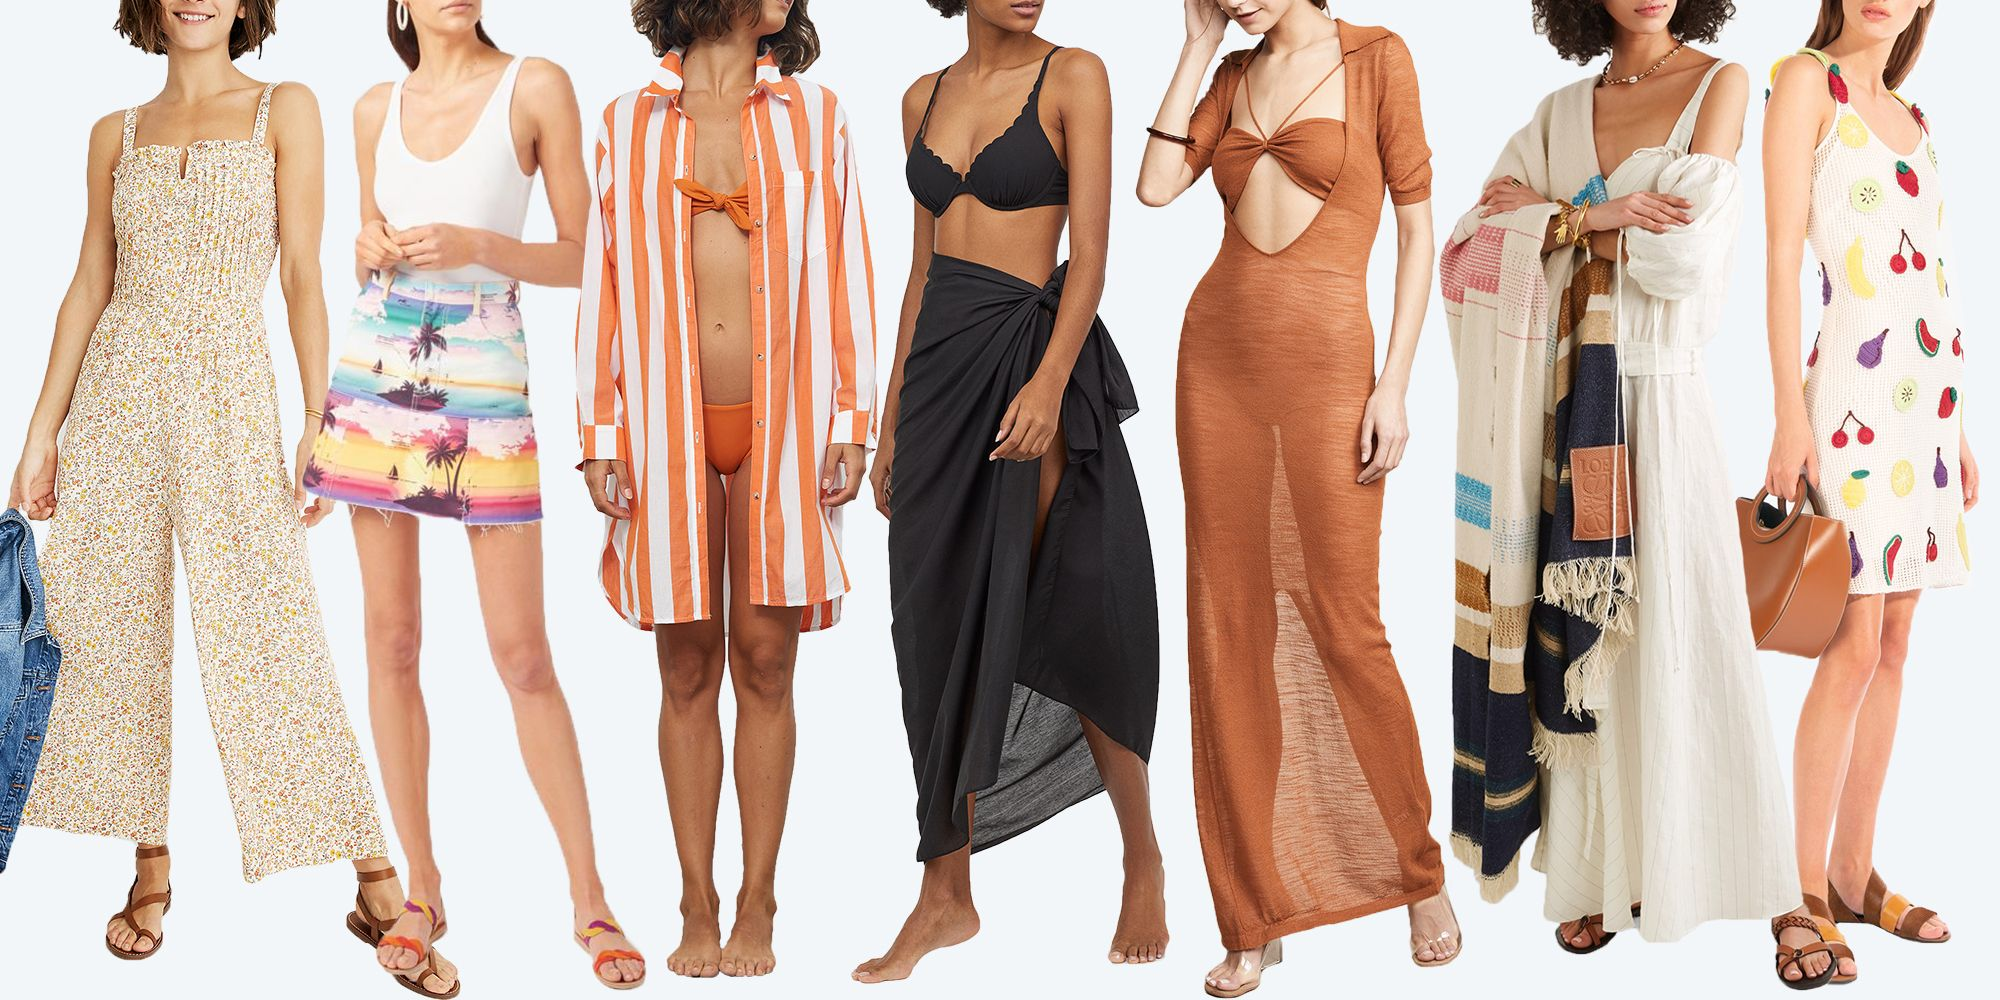 3dc8fc9627 15 Cute Summer Beach Outfits - What to Wear at the Beach This Summer ...